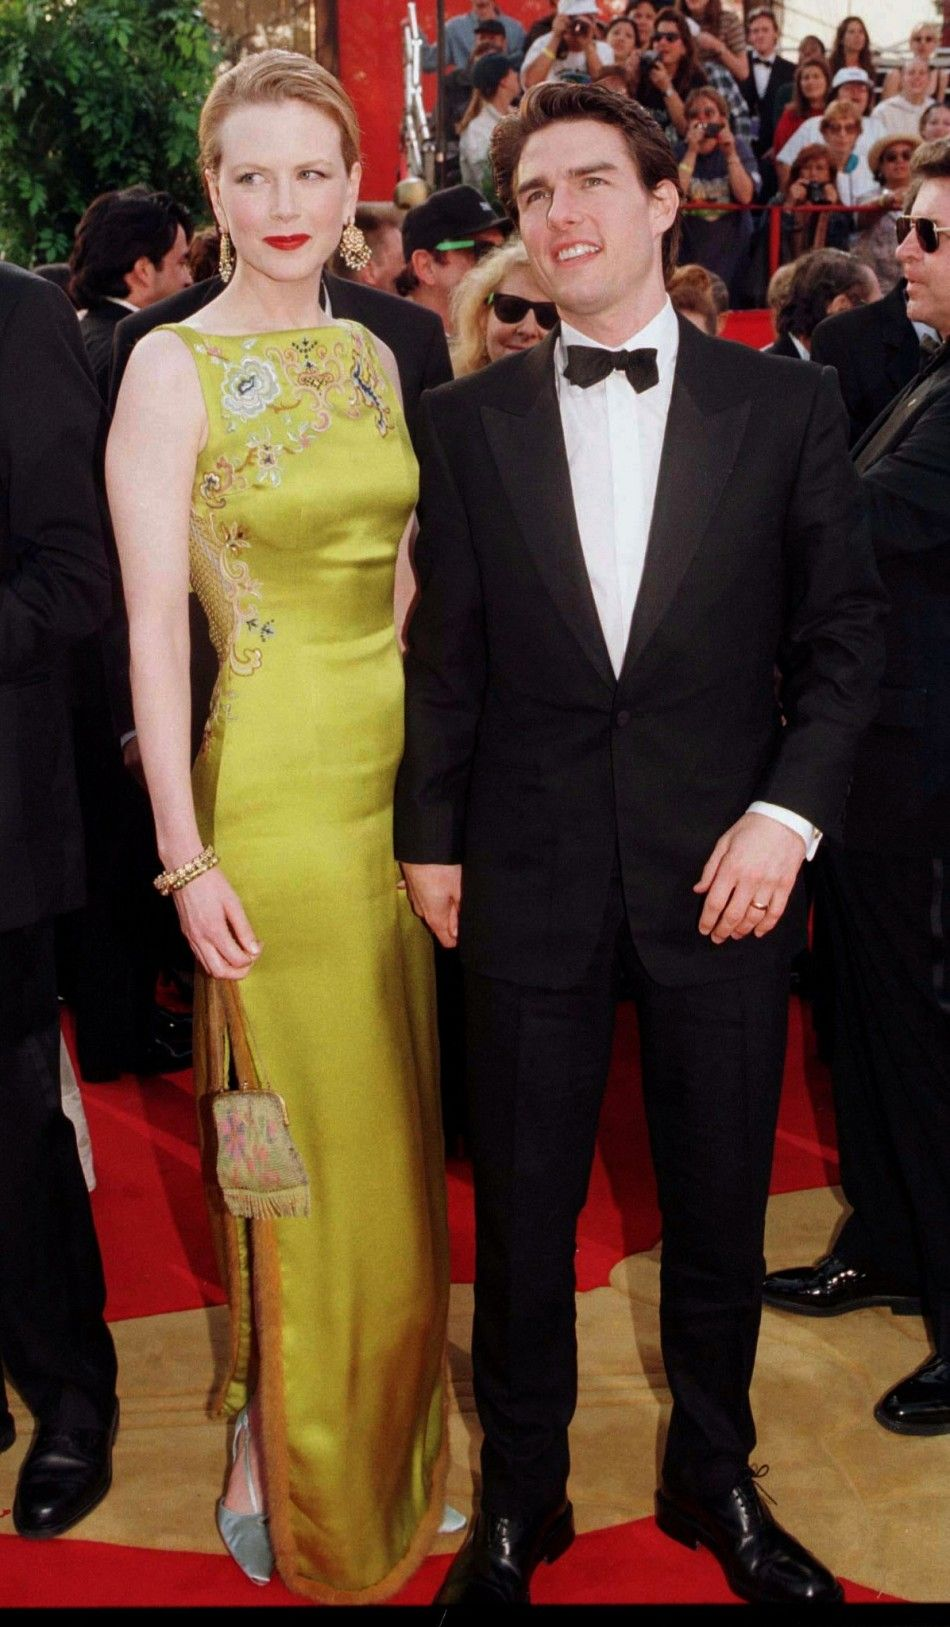 Nicole Kidman Oscars 1997 A Vision In Chartreuse Quite Memorable Red Carpet Oscars Red Carpet Fashion Oscar Dresses